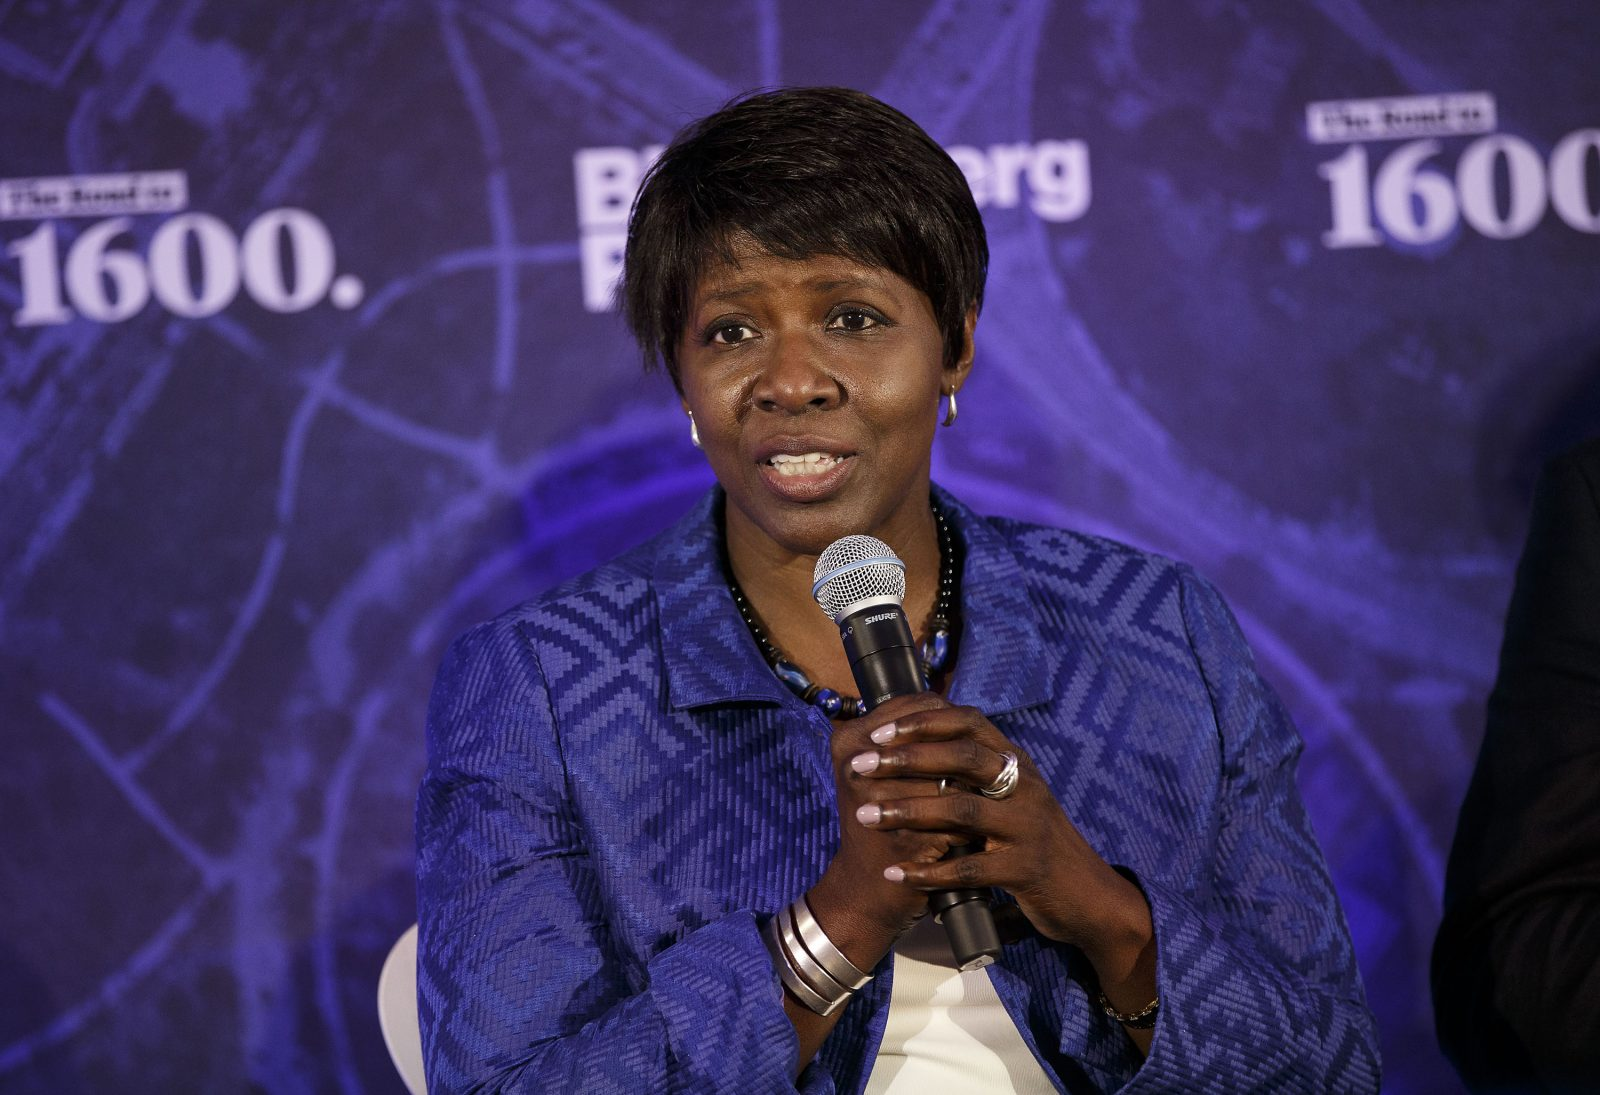 Gwen Ifill, co-managing editor of PBS NewsHour seen during on July 28, became one of the first African-American women to preside over a major national political show. (Patrick T. Fallon/Bloomberg)